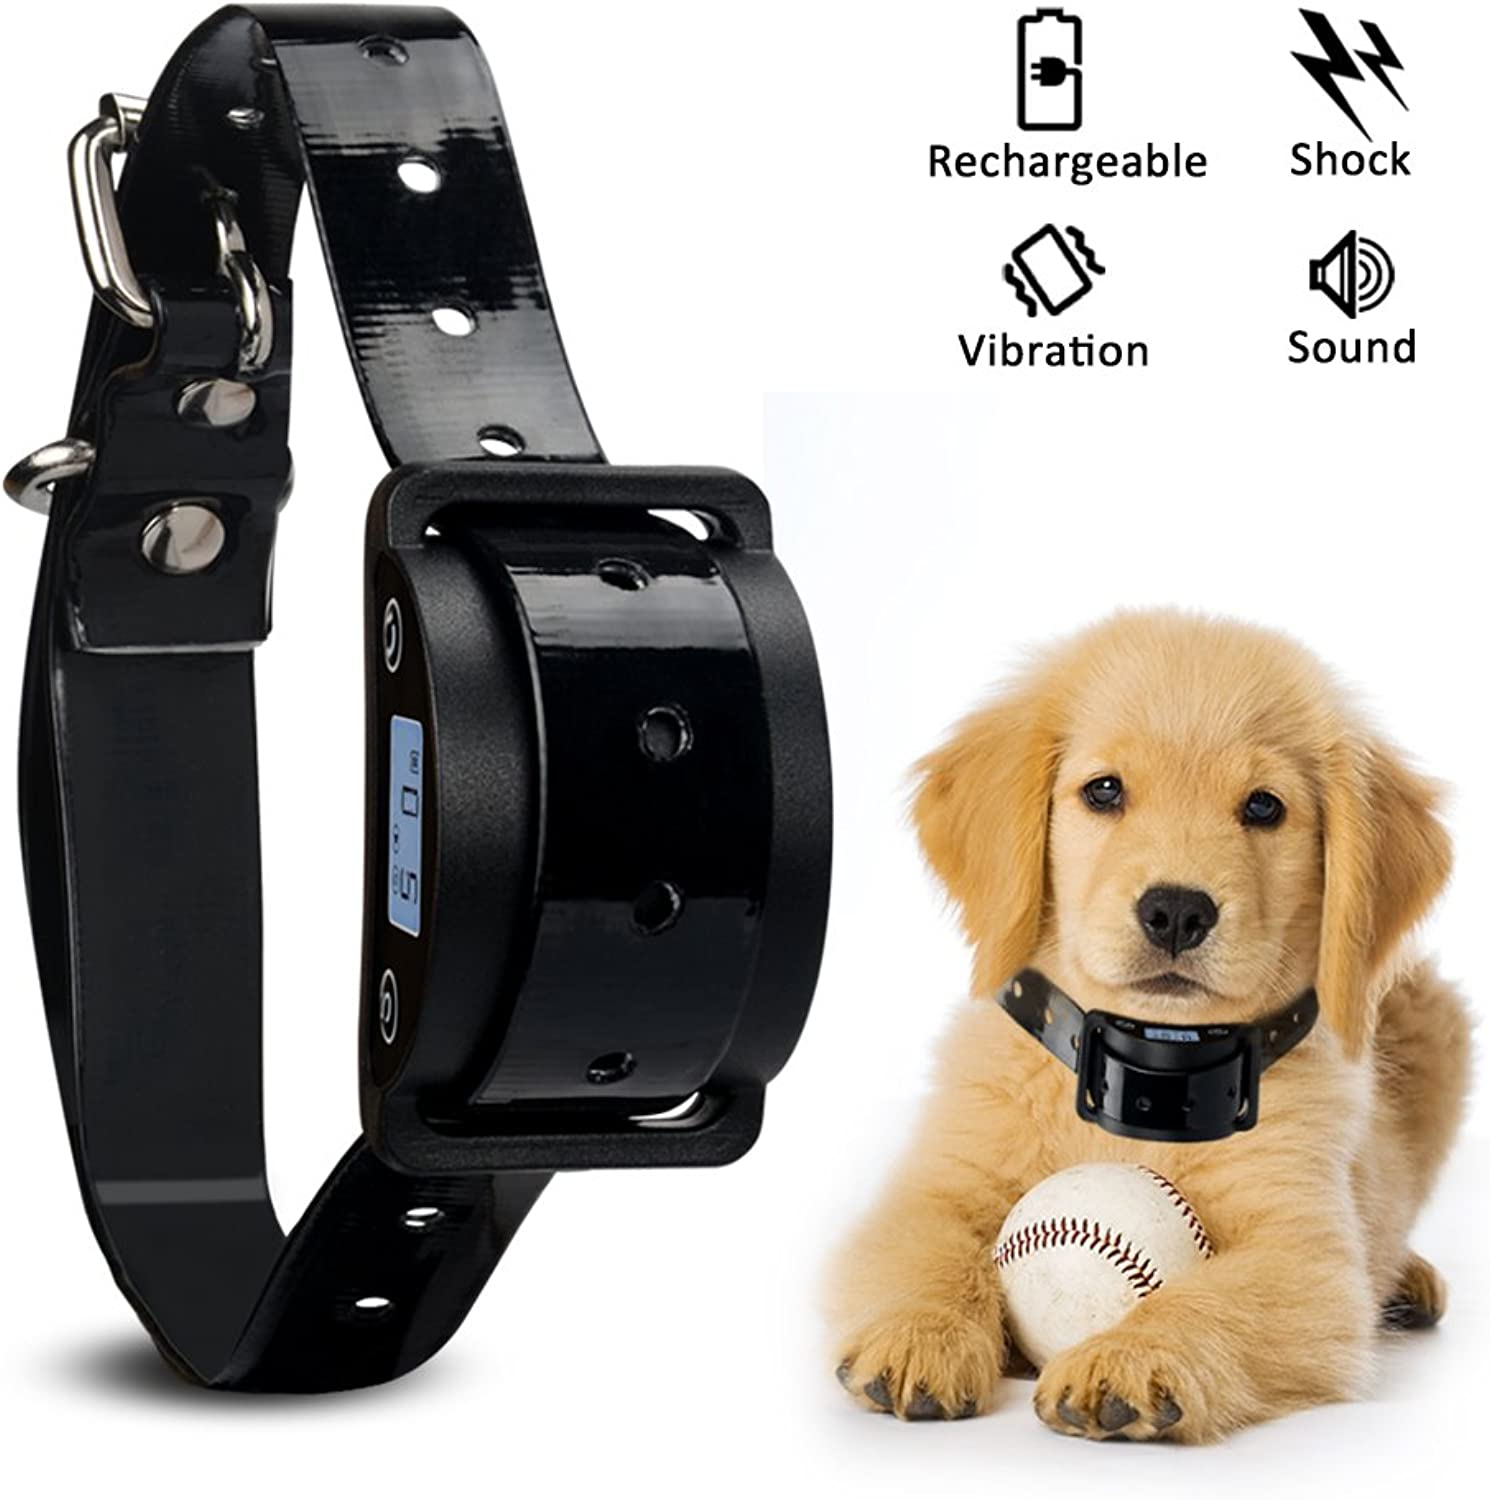 Nigecue LCD Screen Dog Bark Collar, Dog Bark Collar Waterproof and Rechargeable Smart Detection Vibration Shock Beep Anti Bark Modes, 5 Adjustable Sensitivity for Small Medium Large Dogs